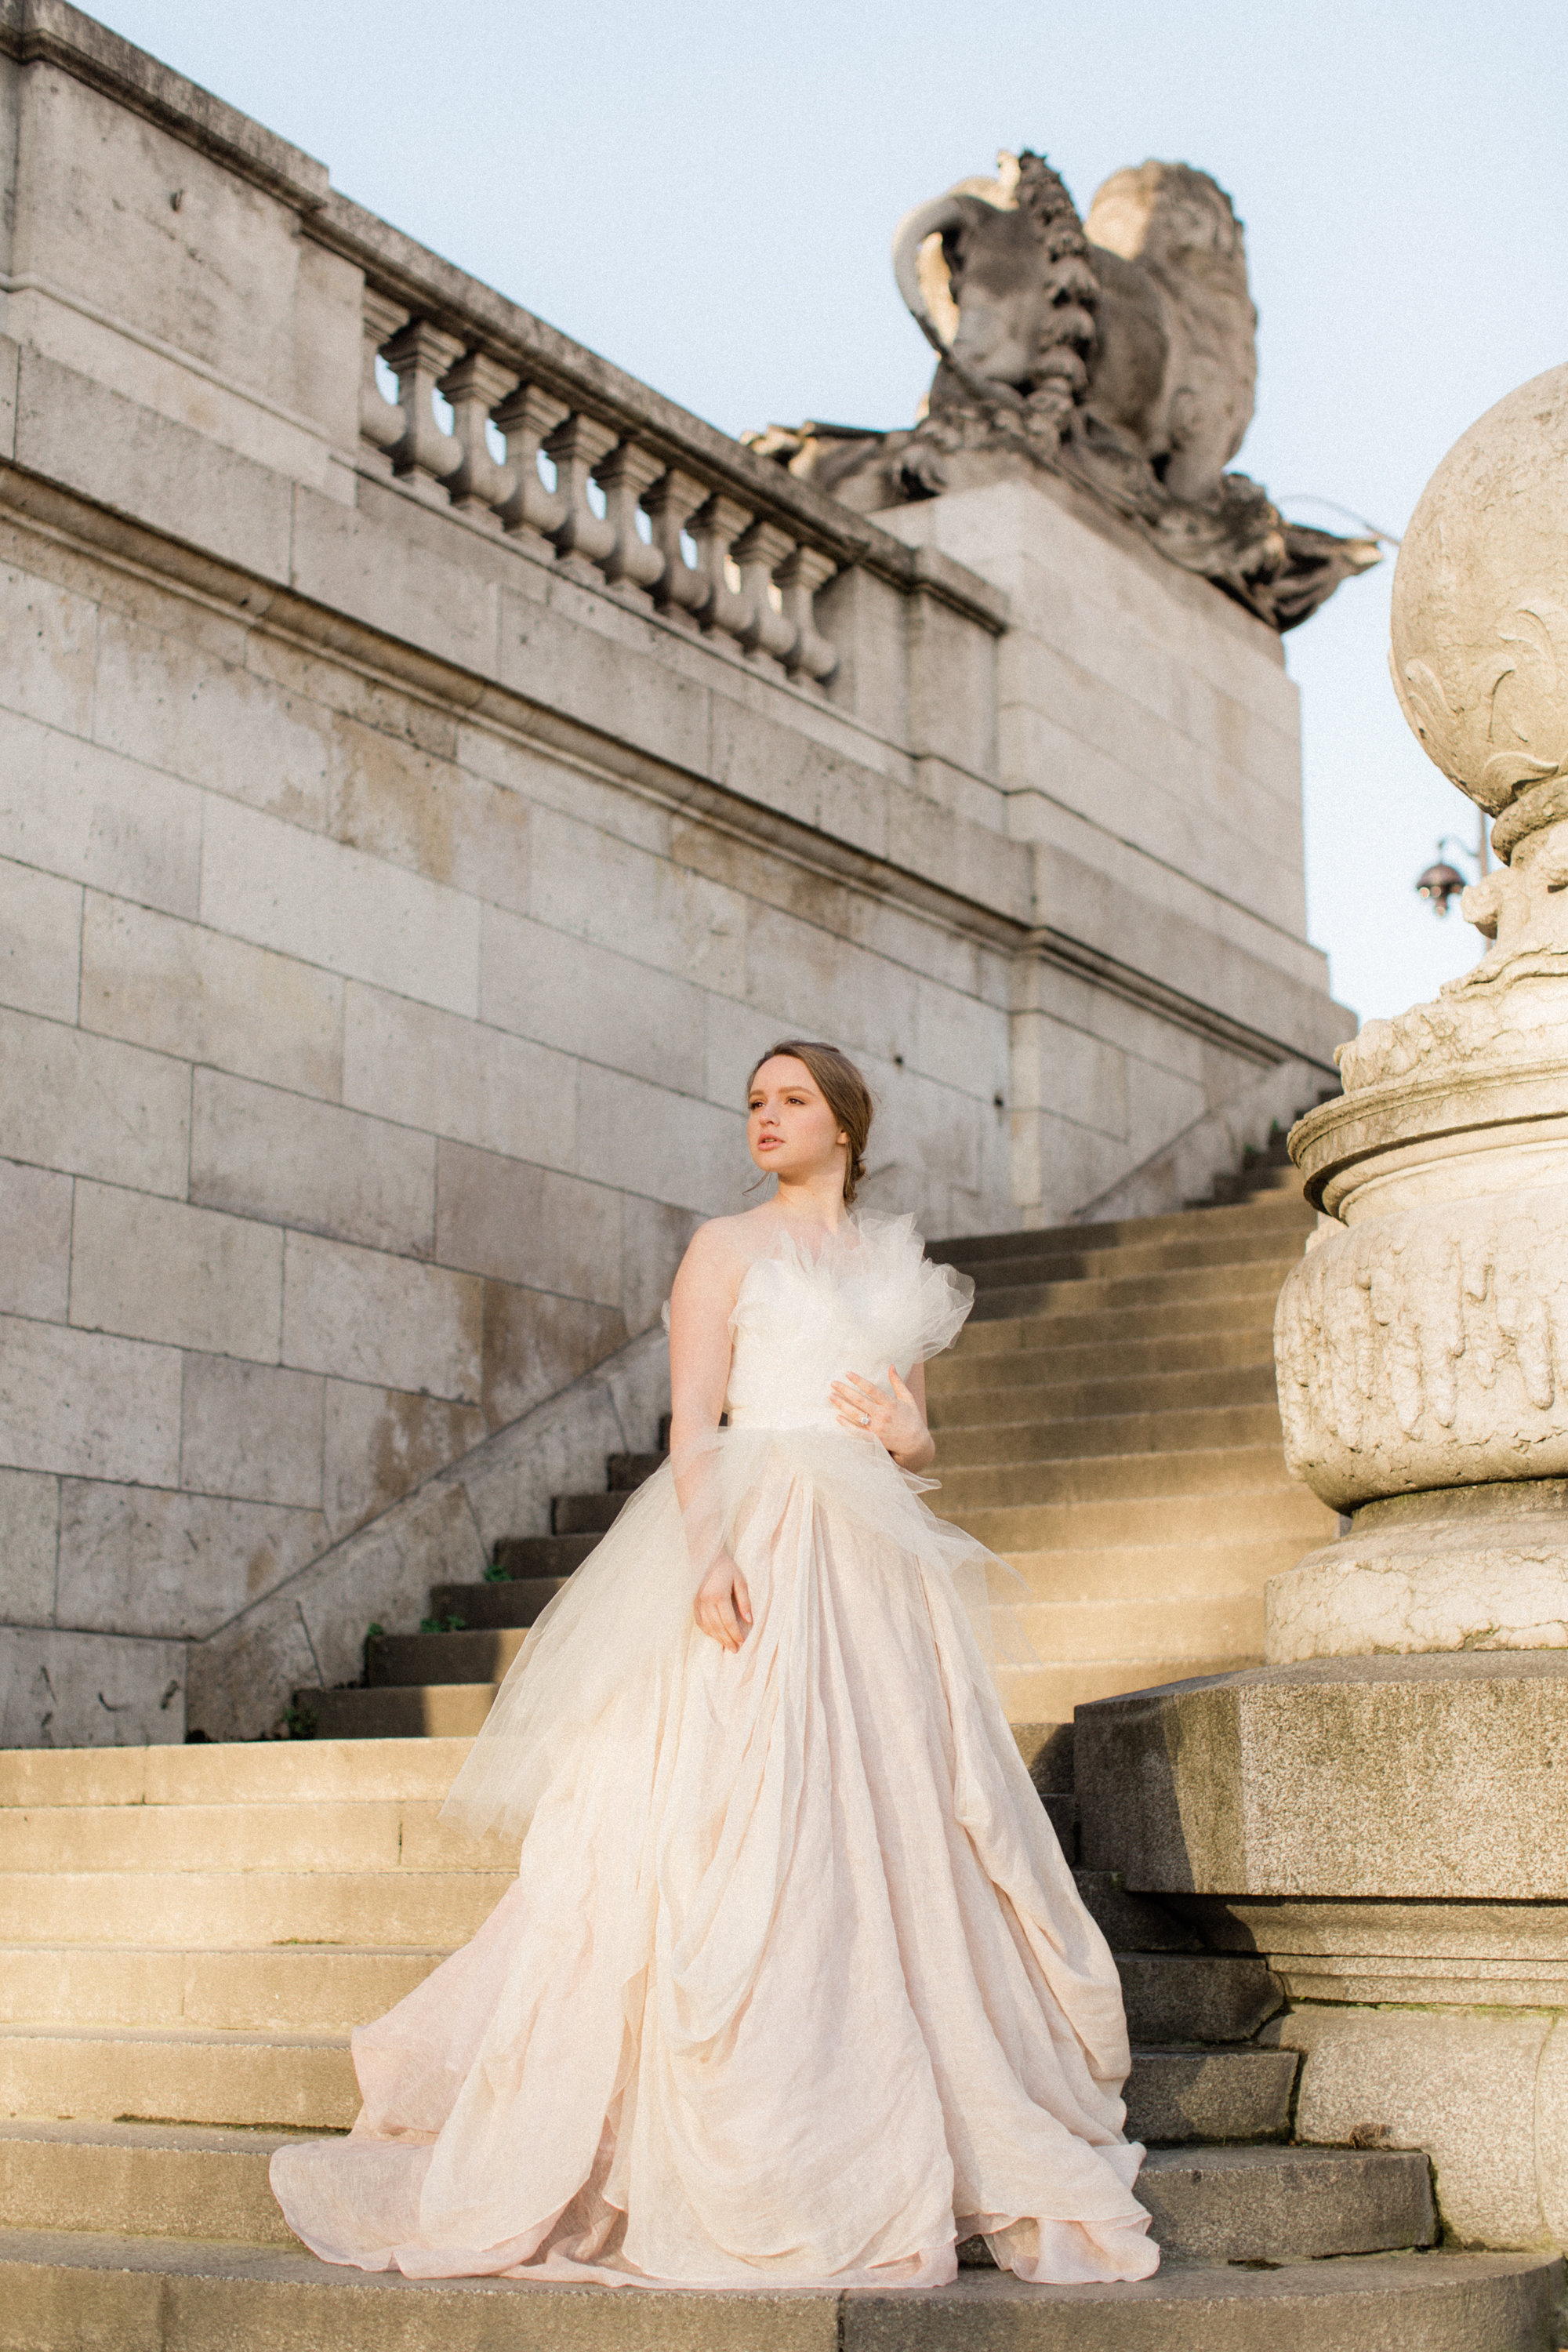 Grand palais wedding gown blush and tulle4.jpg